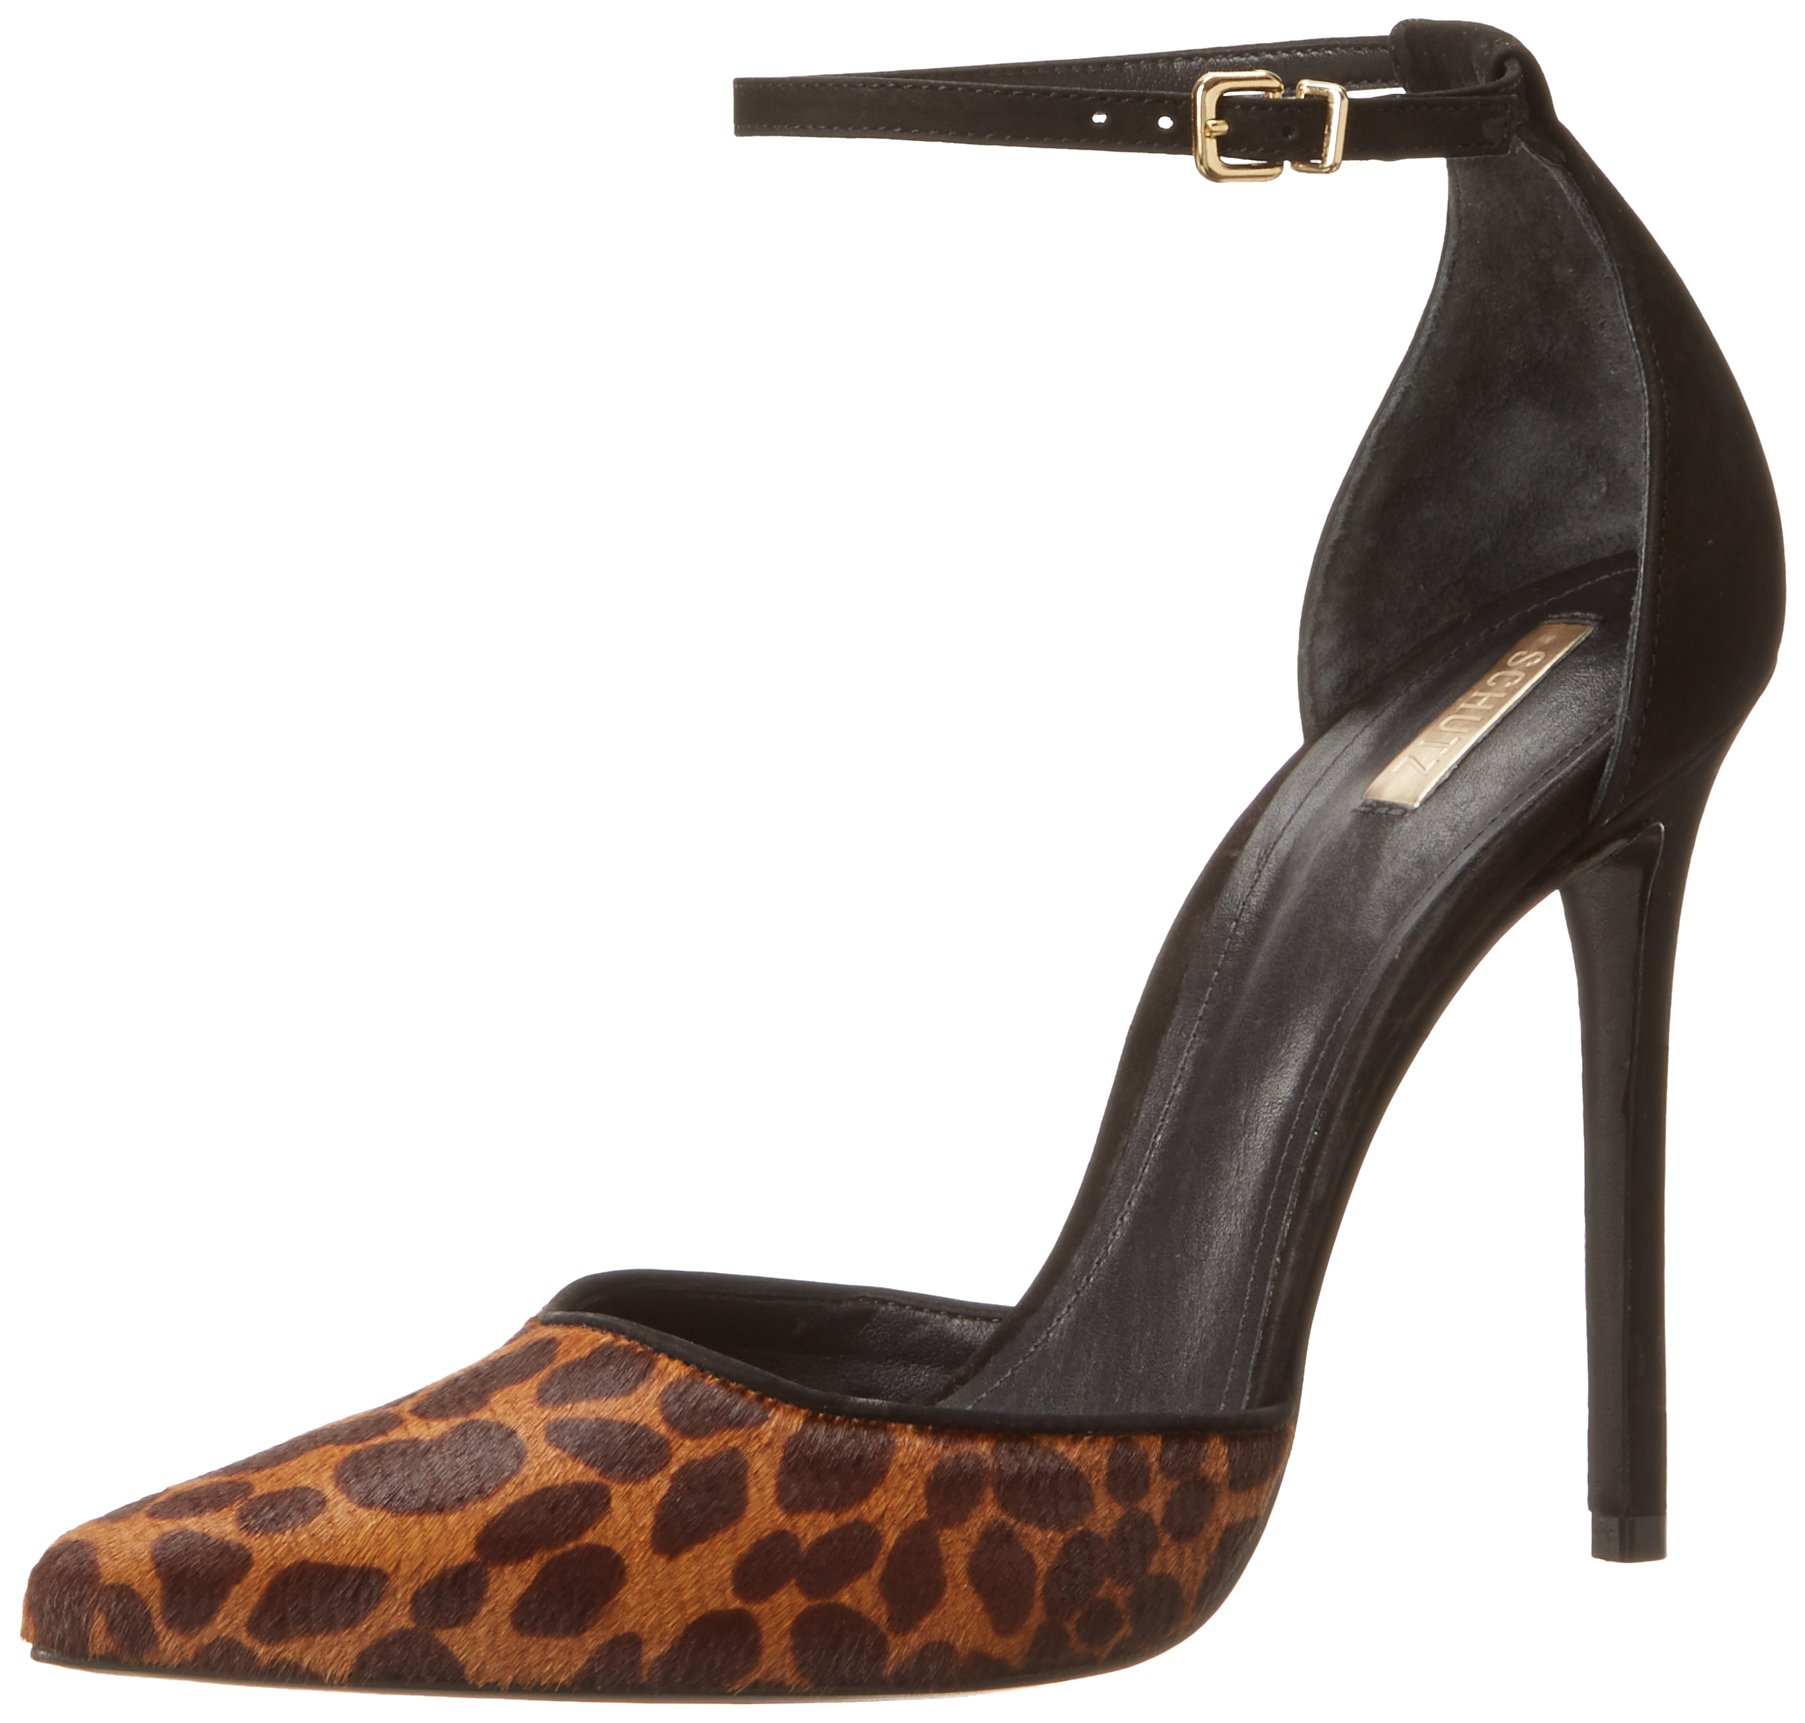 Schutz Women's Naiara Dress Pump image